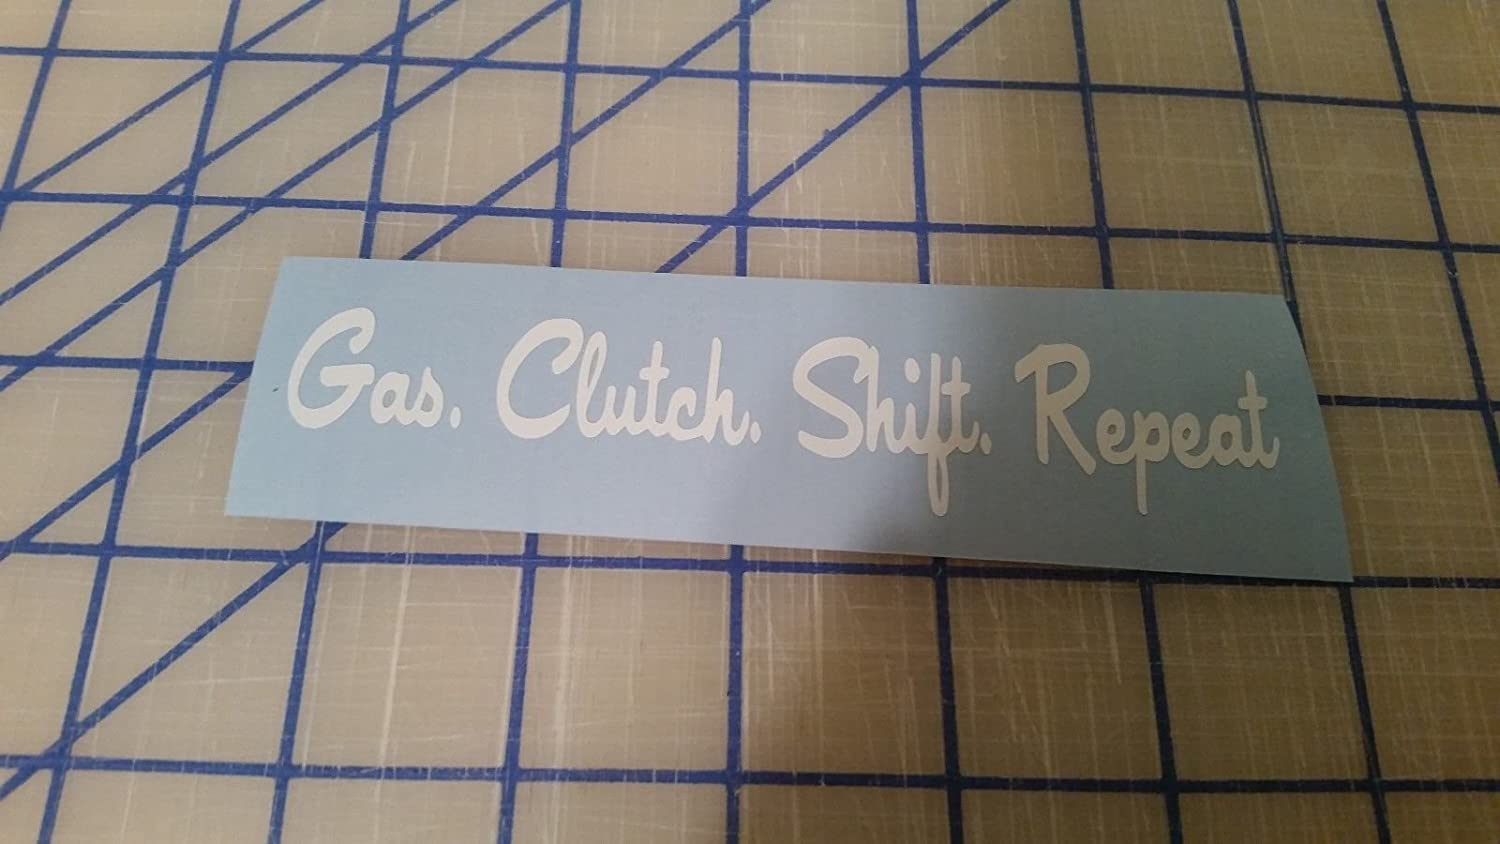 Gas Clutch Shift Repeat Drift Decal Window Euro Funny Car Vinyl Sticker,  White, Die Cut Vinyl Decal for Windows, Cars, Trucks, Tool Boxes, laptops,